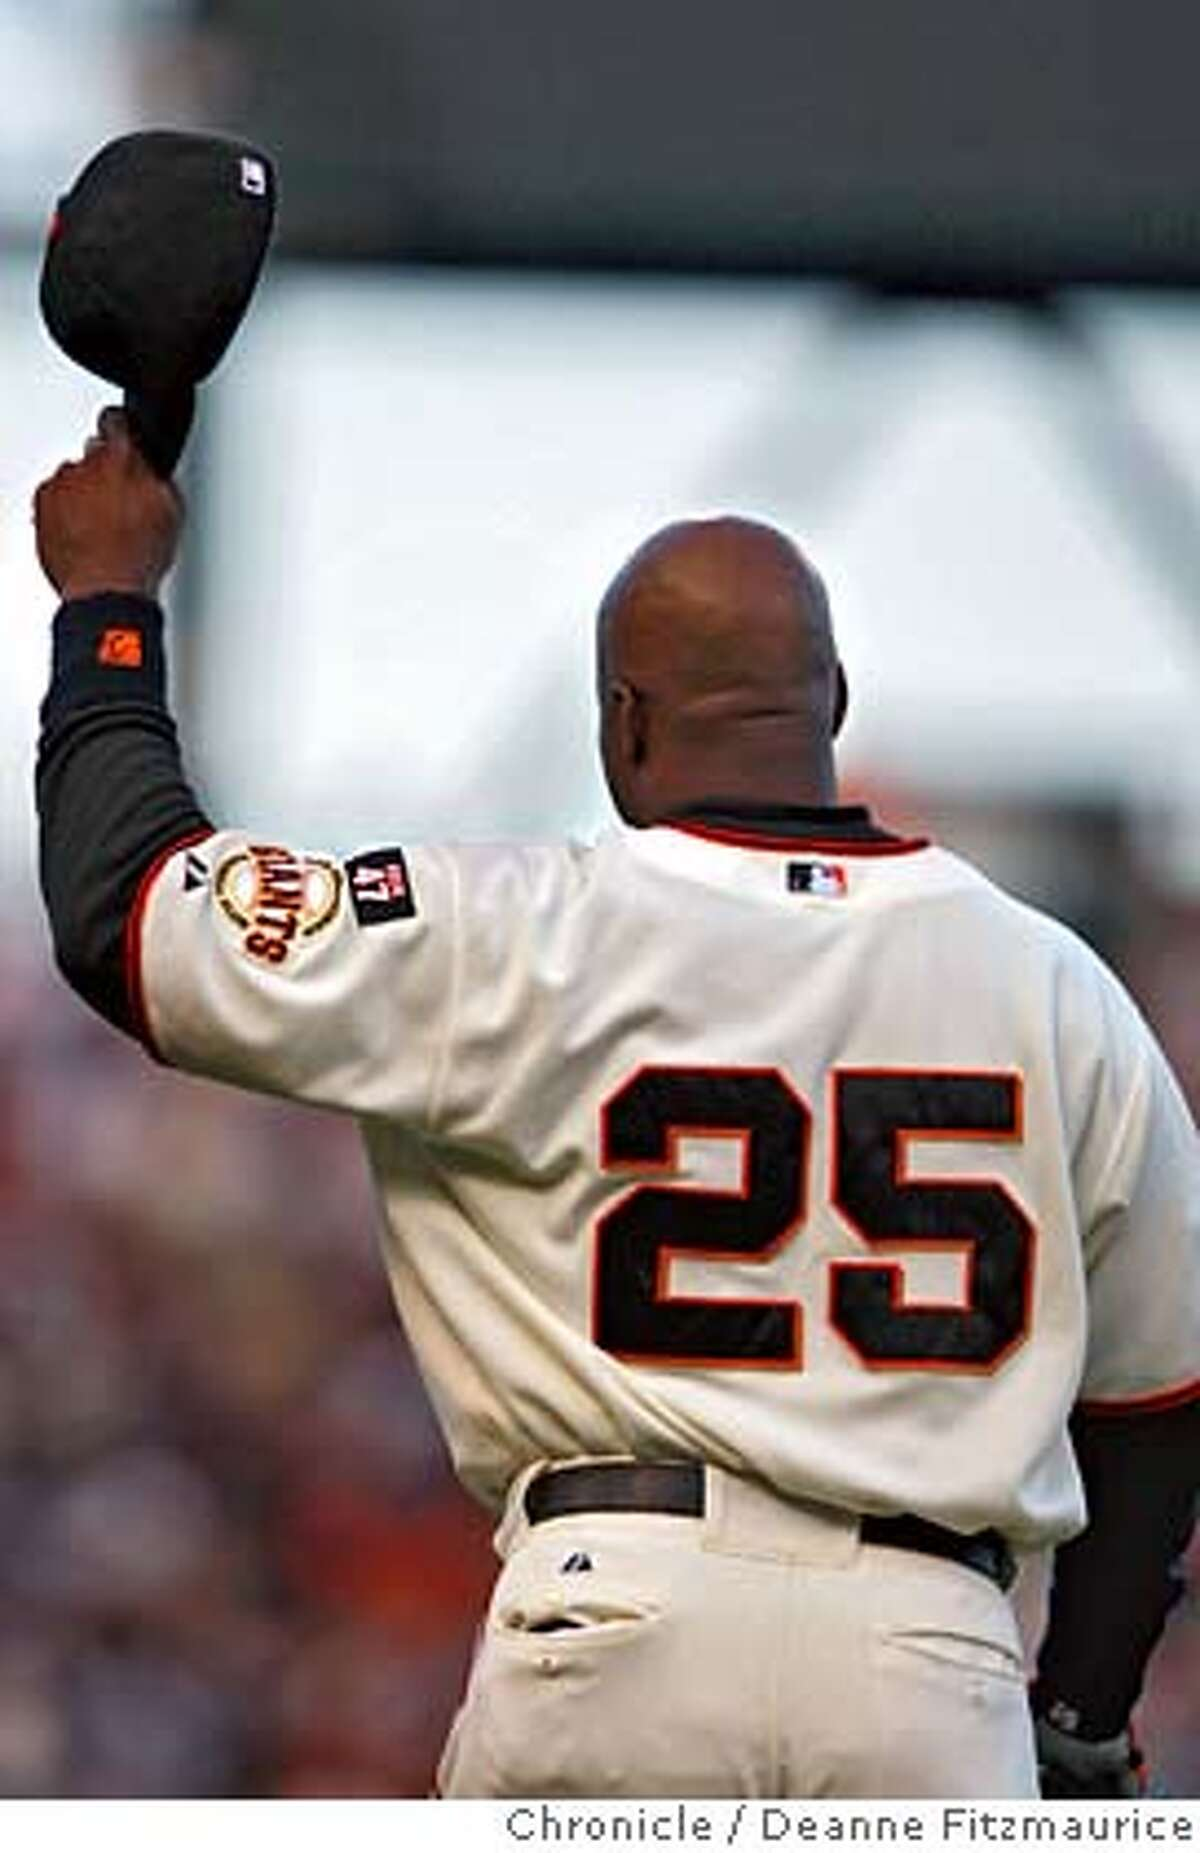 GIANTS28_df_009.JPG Barry Bonds tips his hat while taking the field in the top of the second inning after hitting home run number 754 in the bottom of the first inning off of Marlins starter Rick Vanden Hurk. Florida Marlins play the San Francisco Giants at AT&T Park in San Francisco, CA, on Friday, July, 27 2007. photo taken: 07/27/2007 Deanne Fitzmaurice / The Chronicle ** (cq) MANDATORY CREDIT FOR PHOTOG AND SF CHRONICLE/NO SALES-MAGS OUT